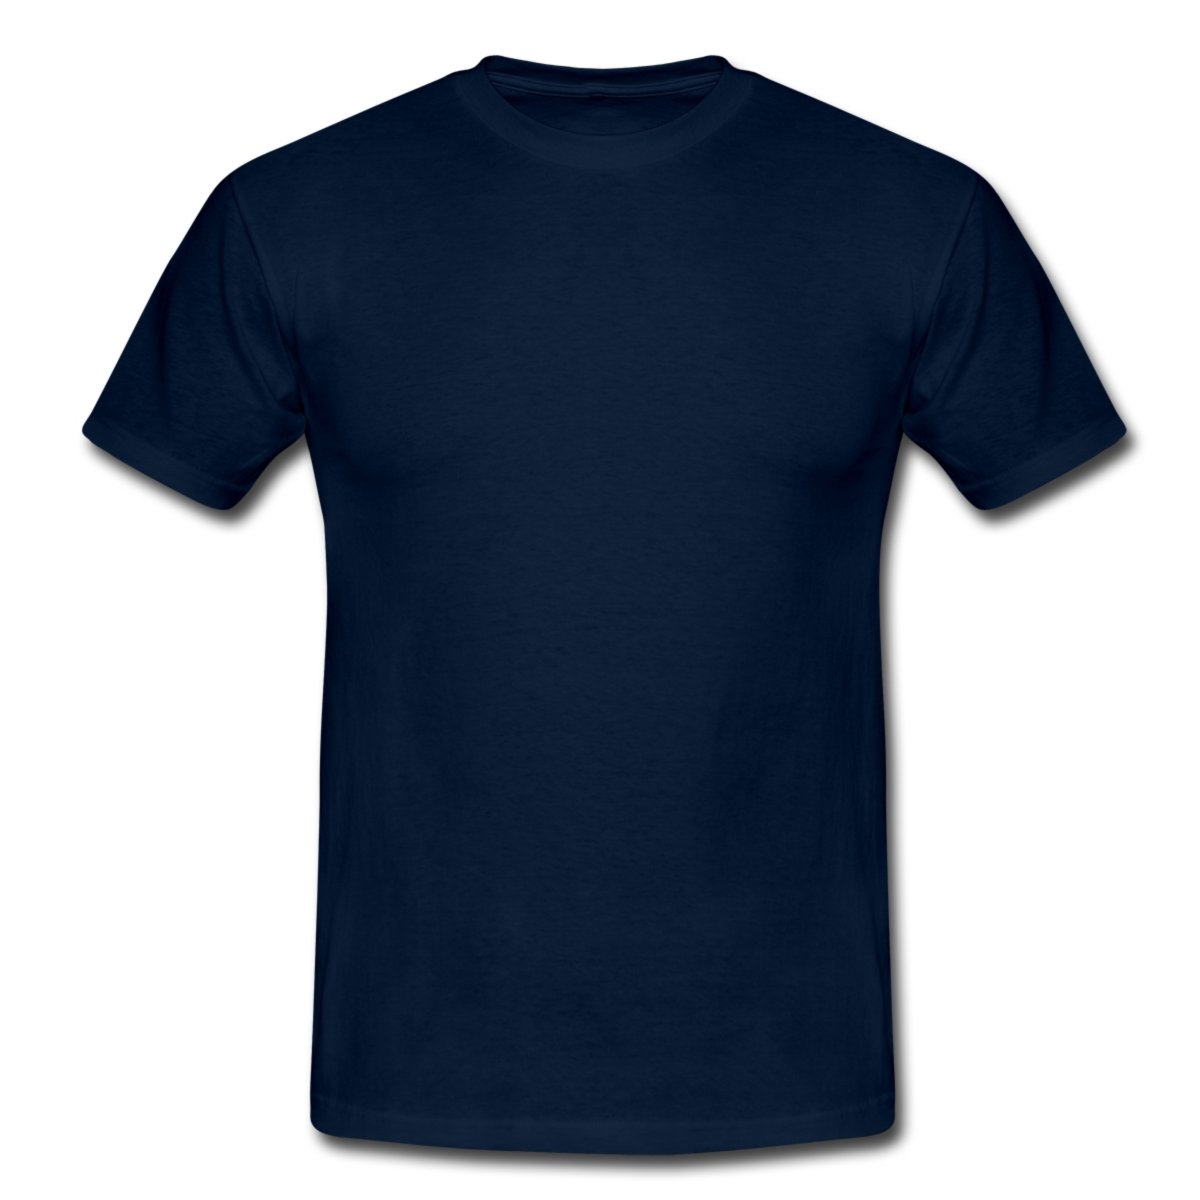 T Short T Shirt 5 Tlr Striking Web Solutions